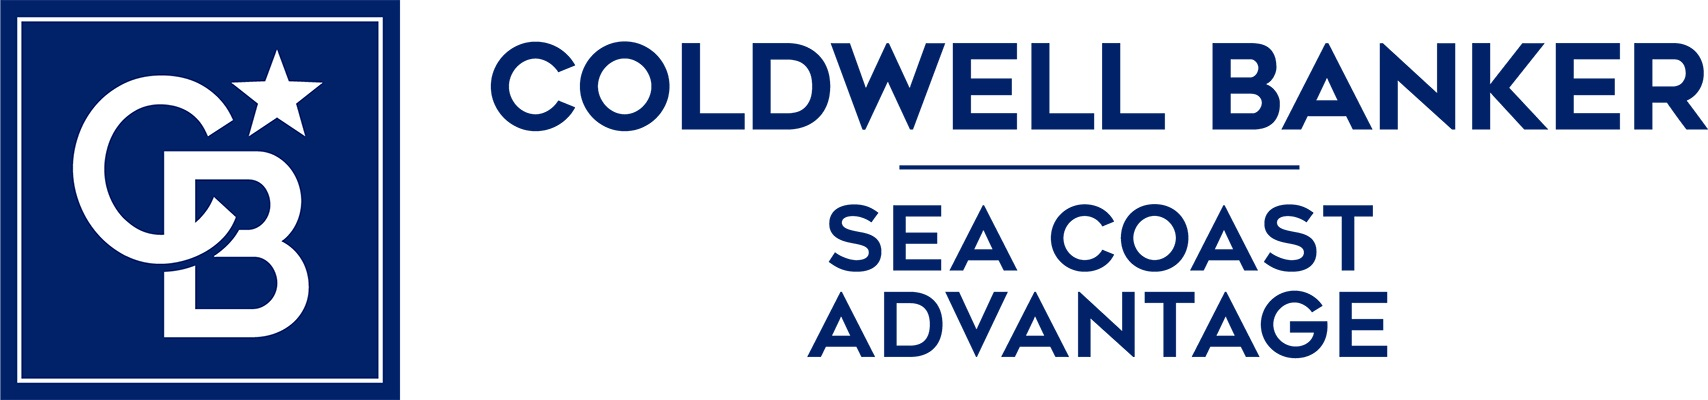 Jerry Crawford - Coldwell Banker Sea Coast Advantage Realty